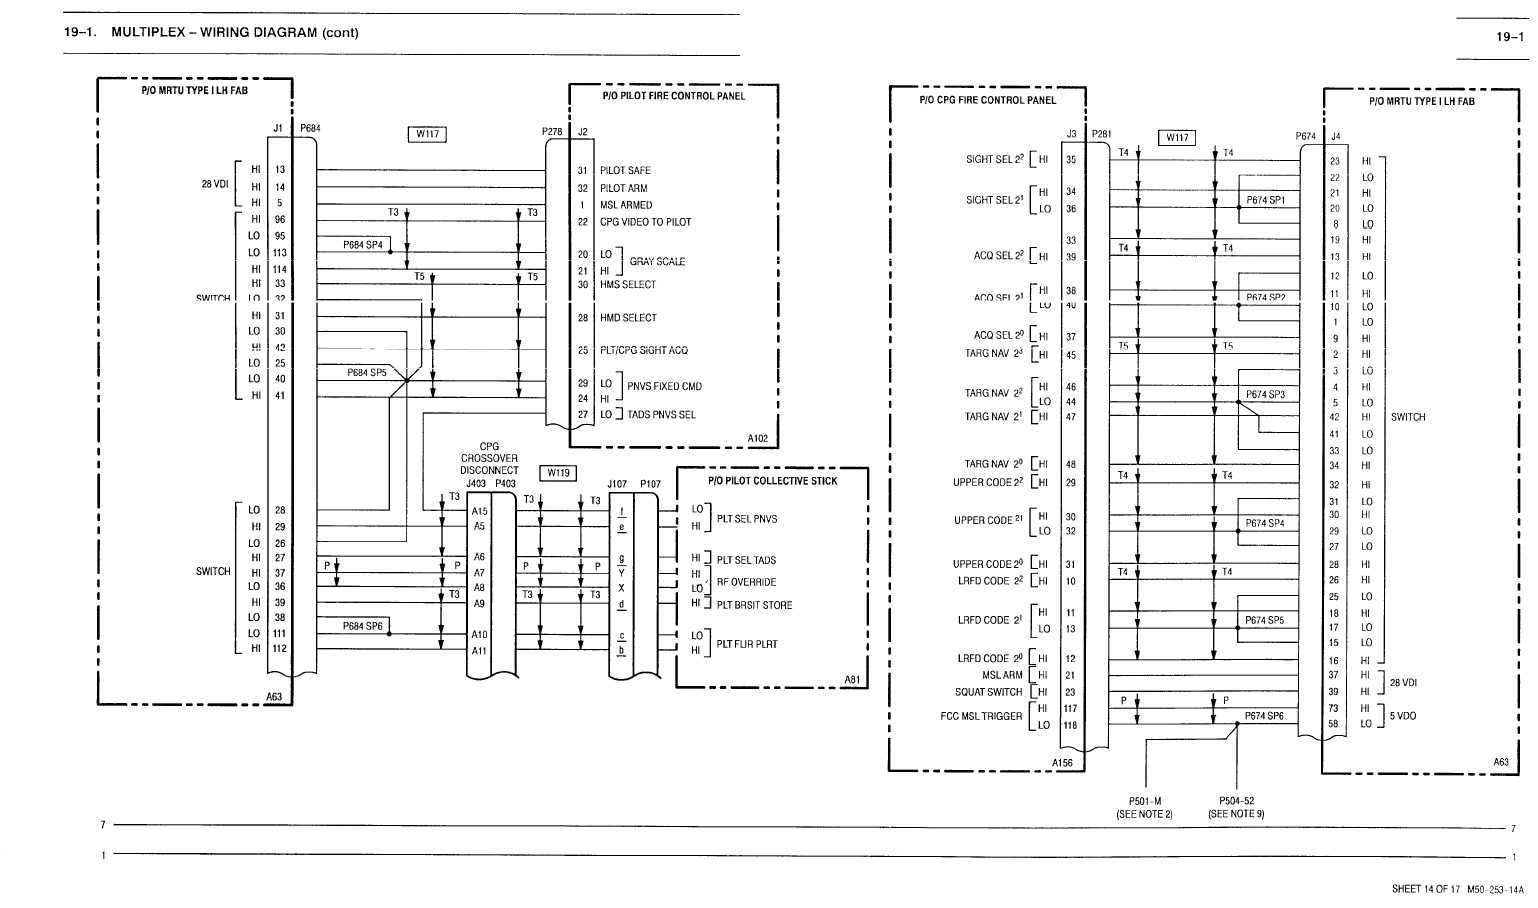 hmmwv wiring diagram mercury 25 hp wiring